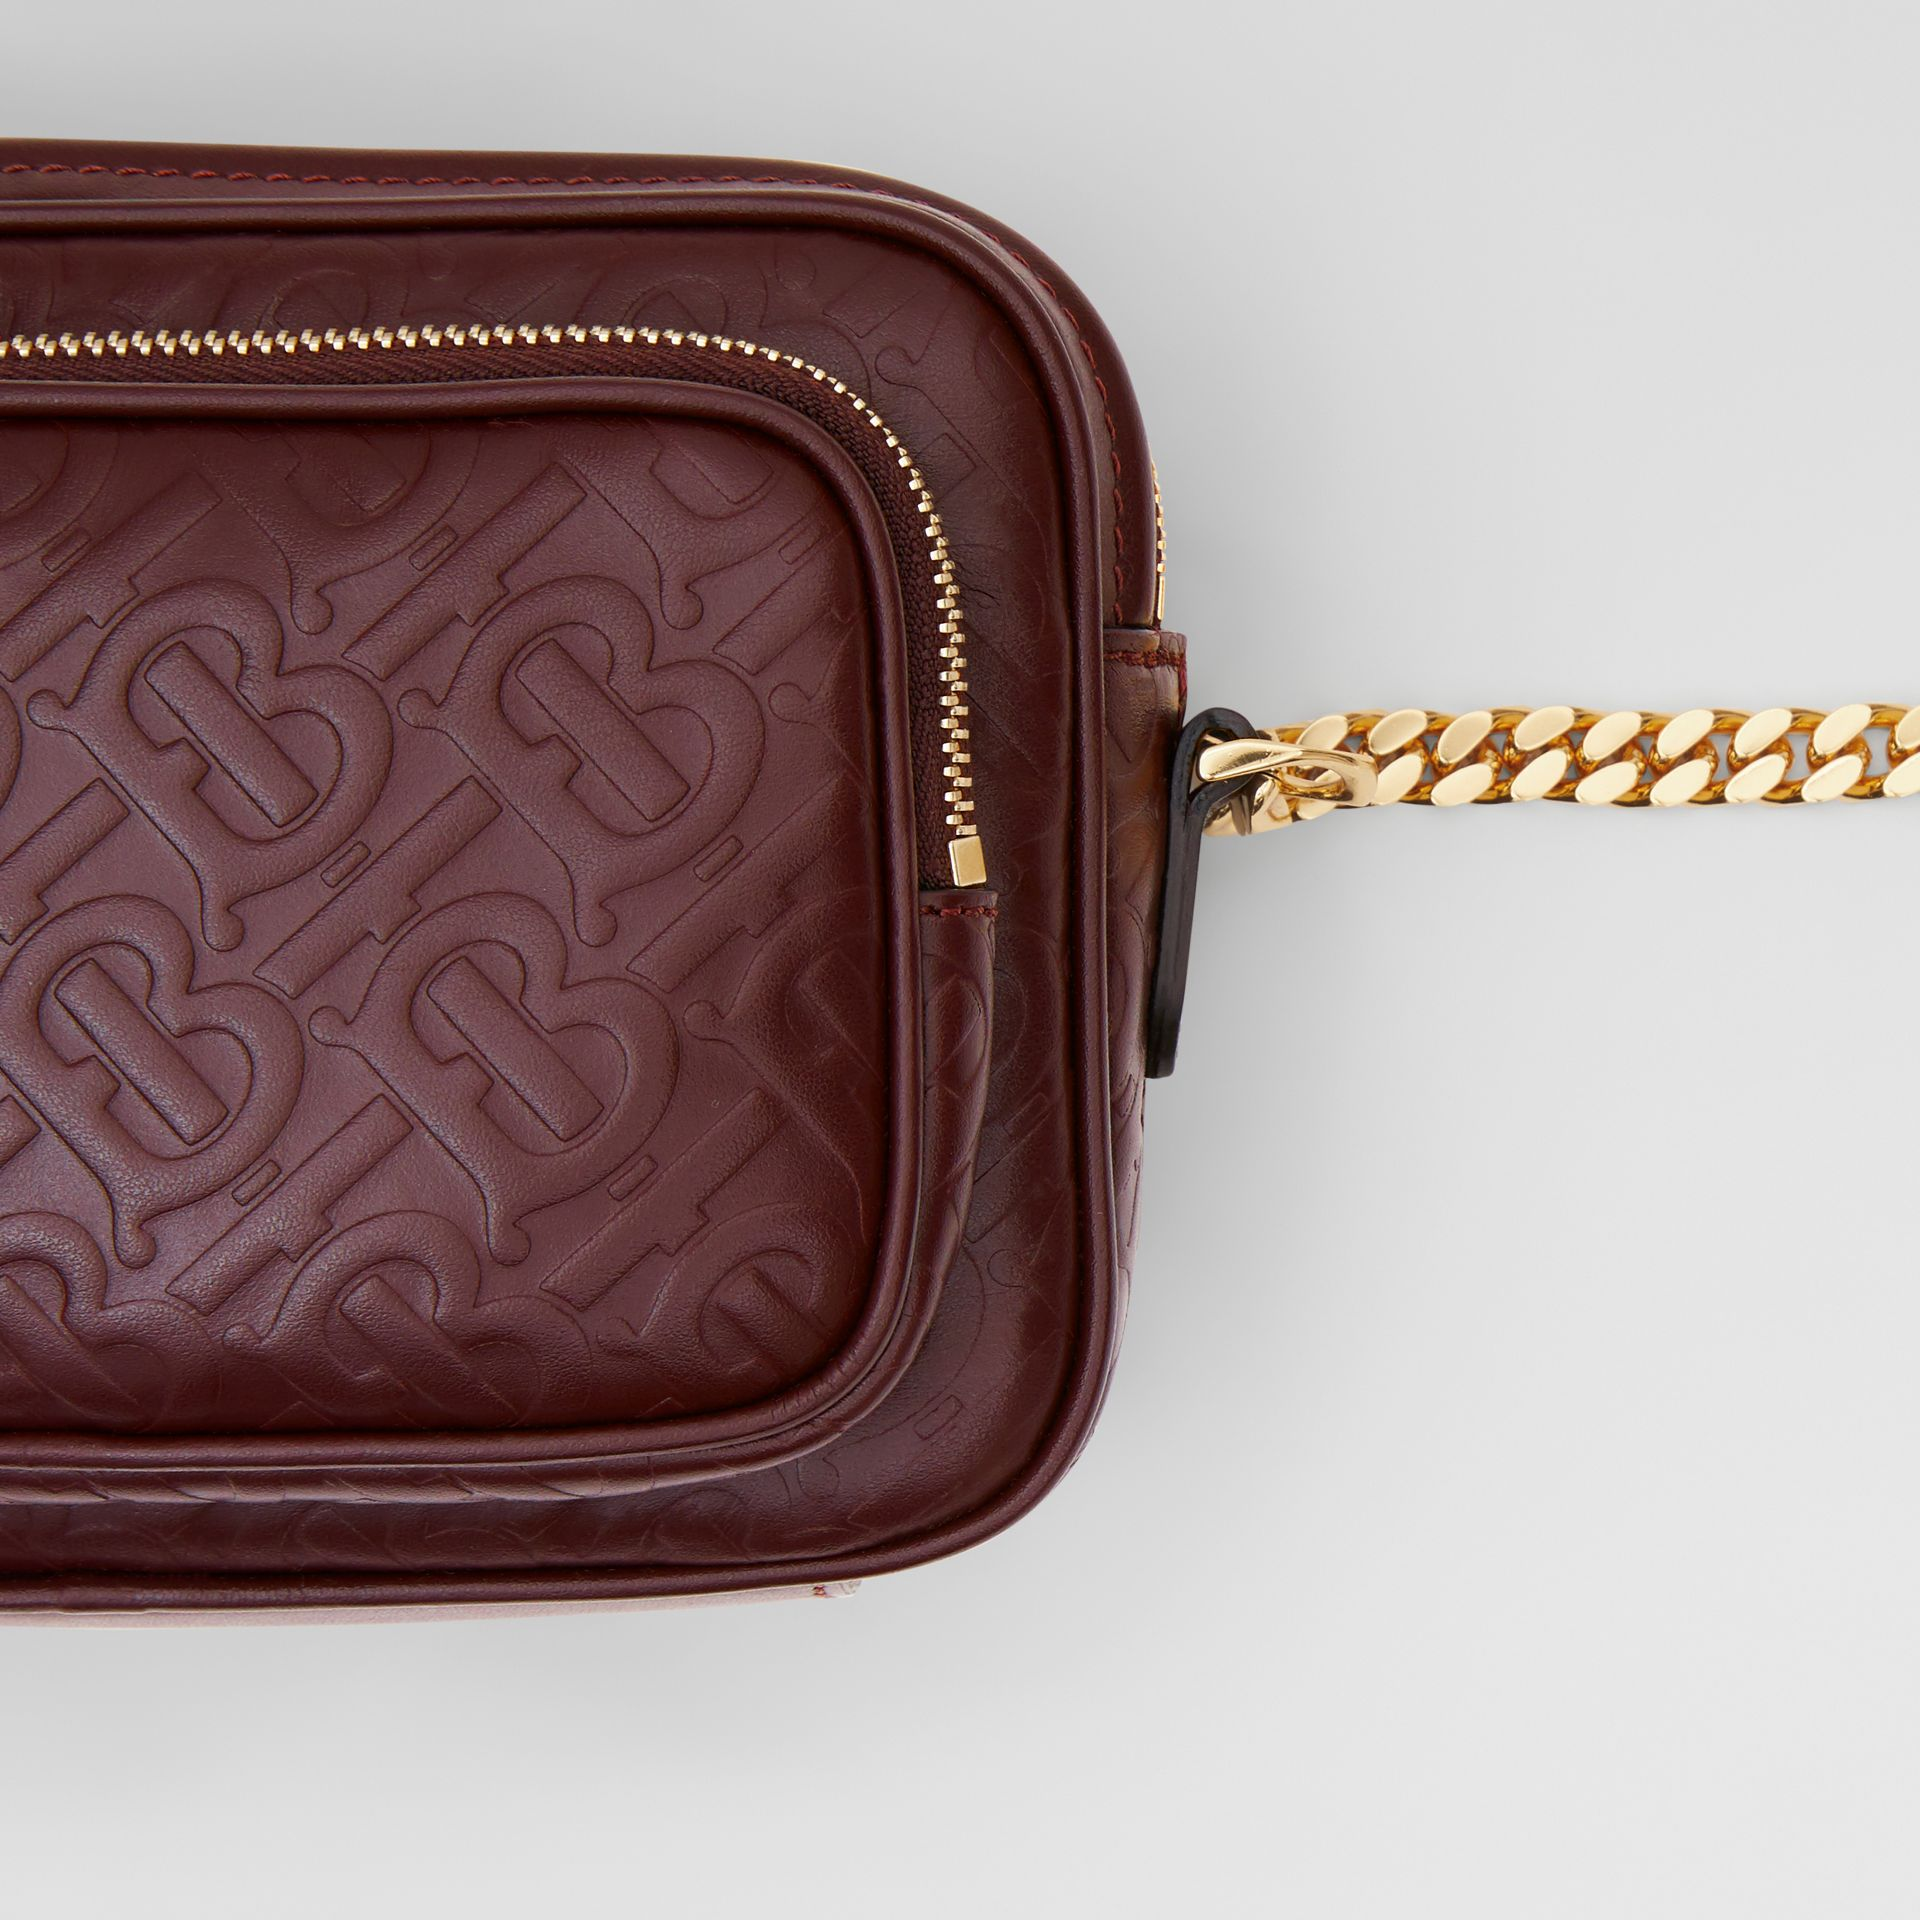 Monogram Leather Camera Bag in Dark Burgundy - Women | Burberry United States - gallery image 1